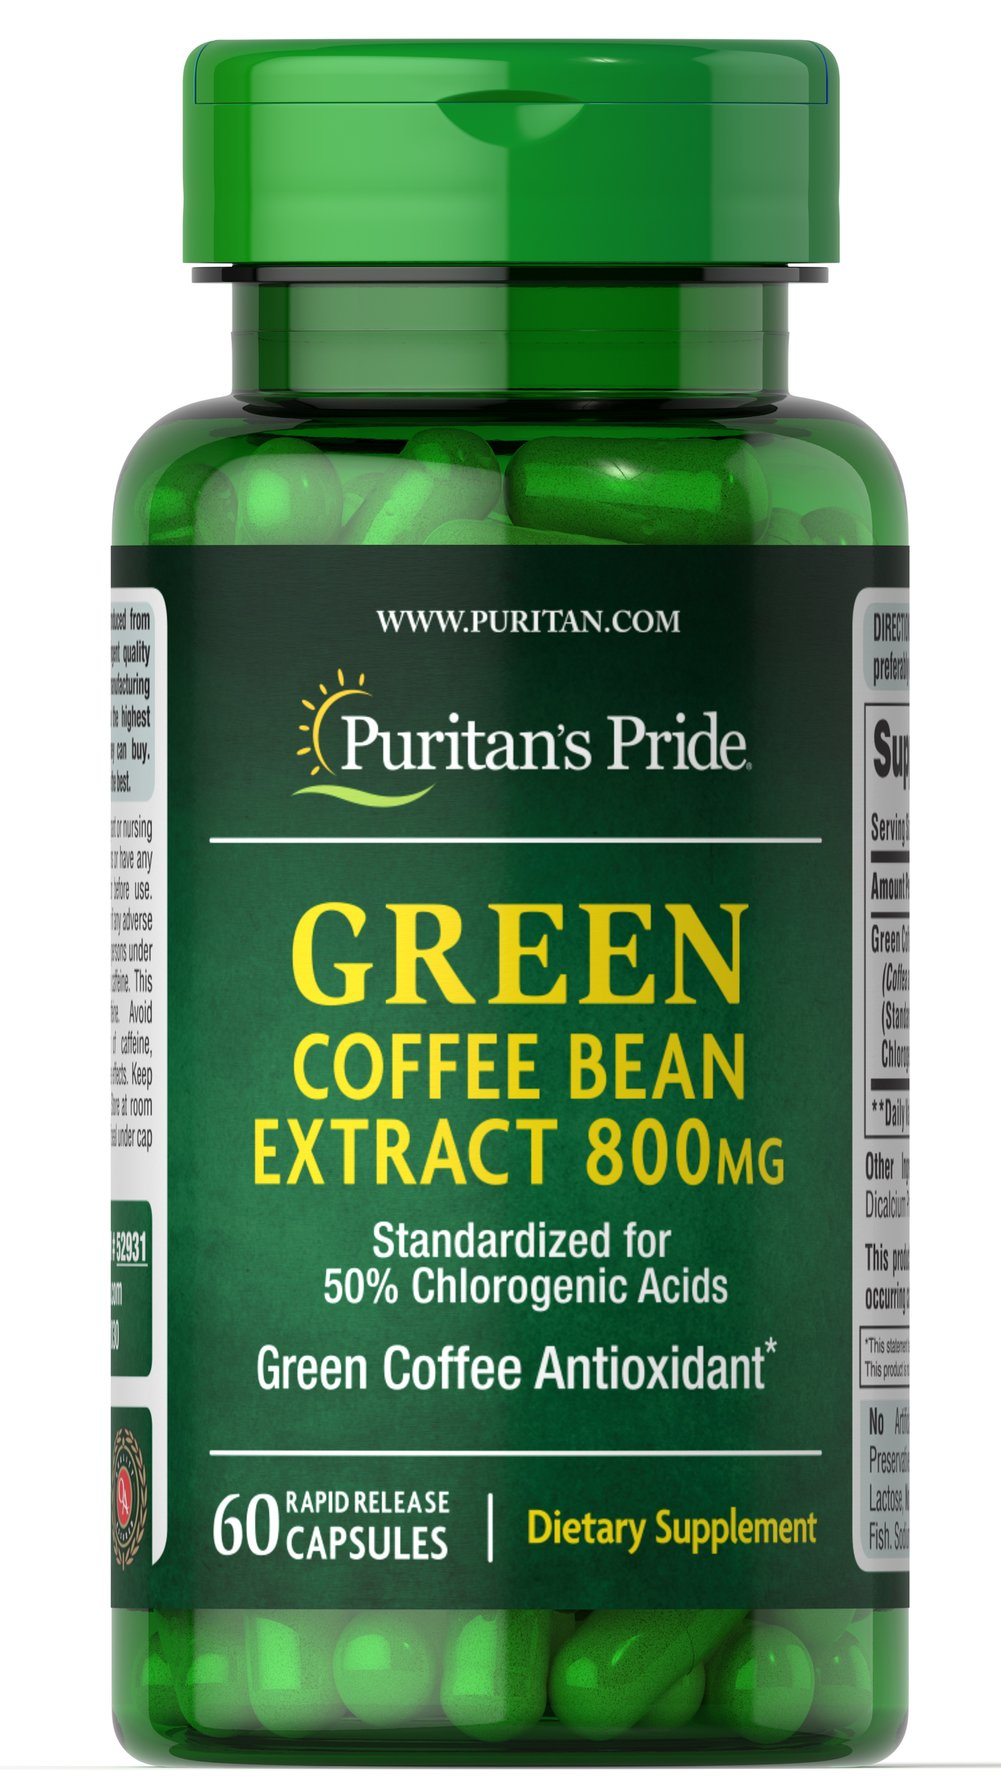 Green Coffee Bean Extract 800 mg <p></p><ul><li>Green Coffee Bean contains antioxidant properties.**</li><li>Standardized for 45% Chlorogenic Acids</li><li>60 Rapid Release Capsules</li></ul> 60 Capsules 800 mg $23.79